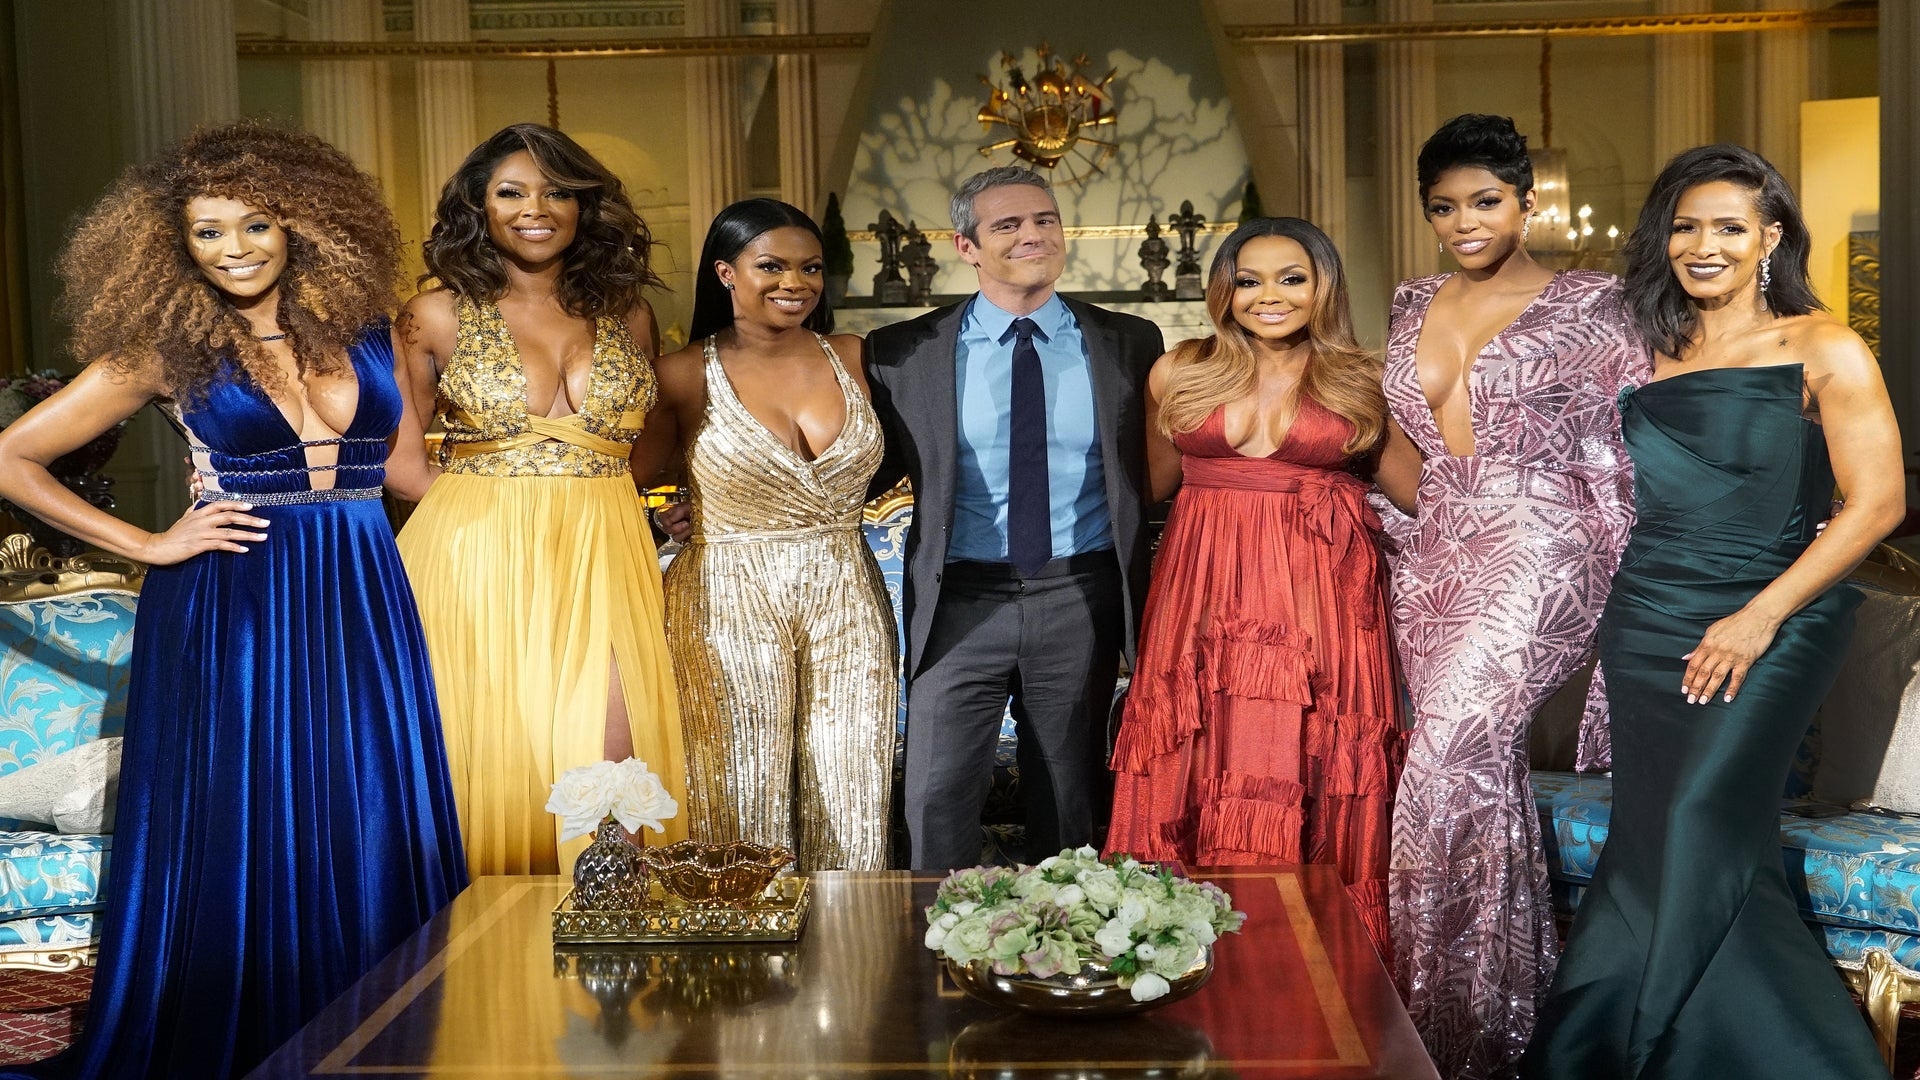 RHOA Finale Fashion Was Just as Memorable as the Shade Thrown